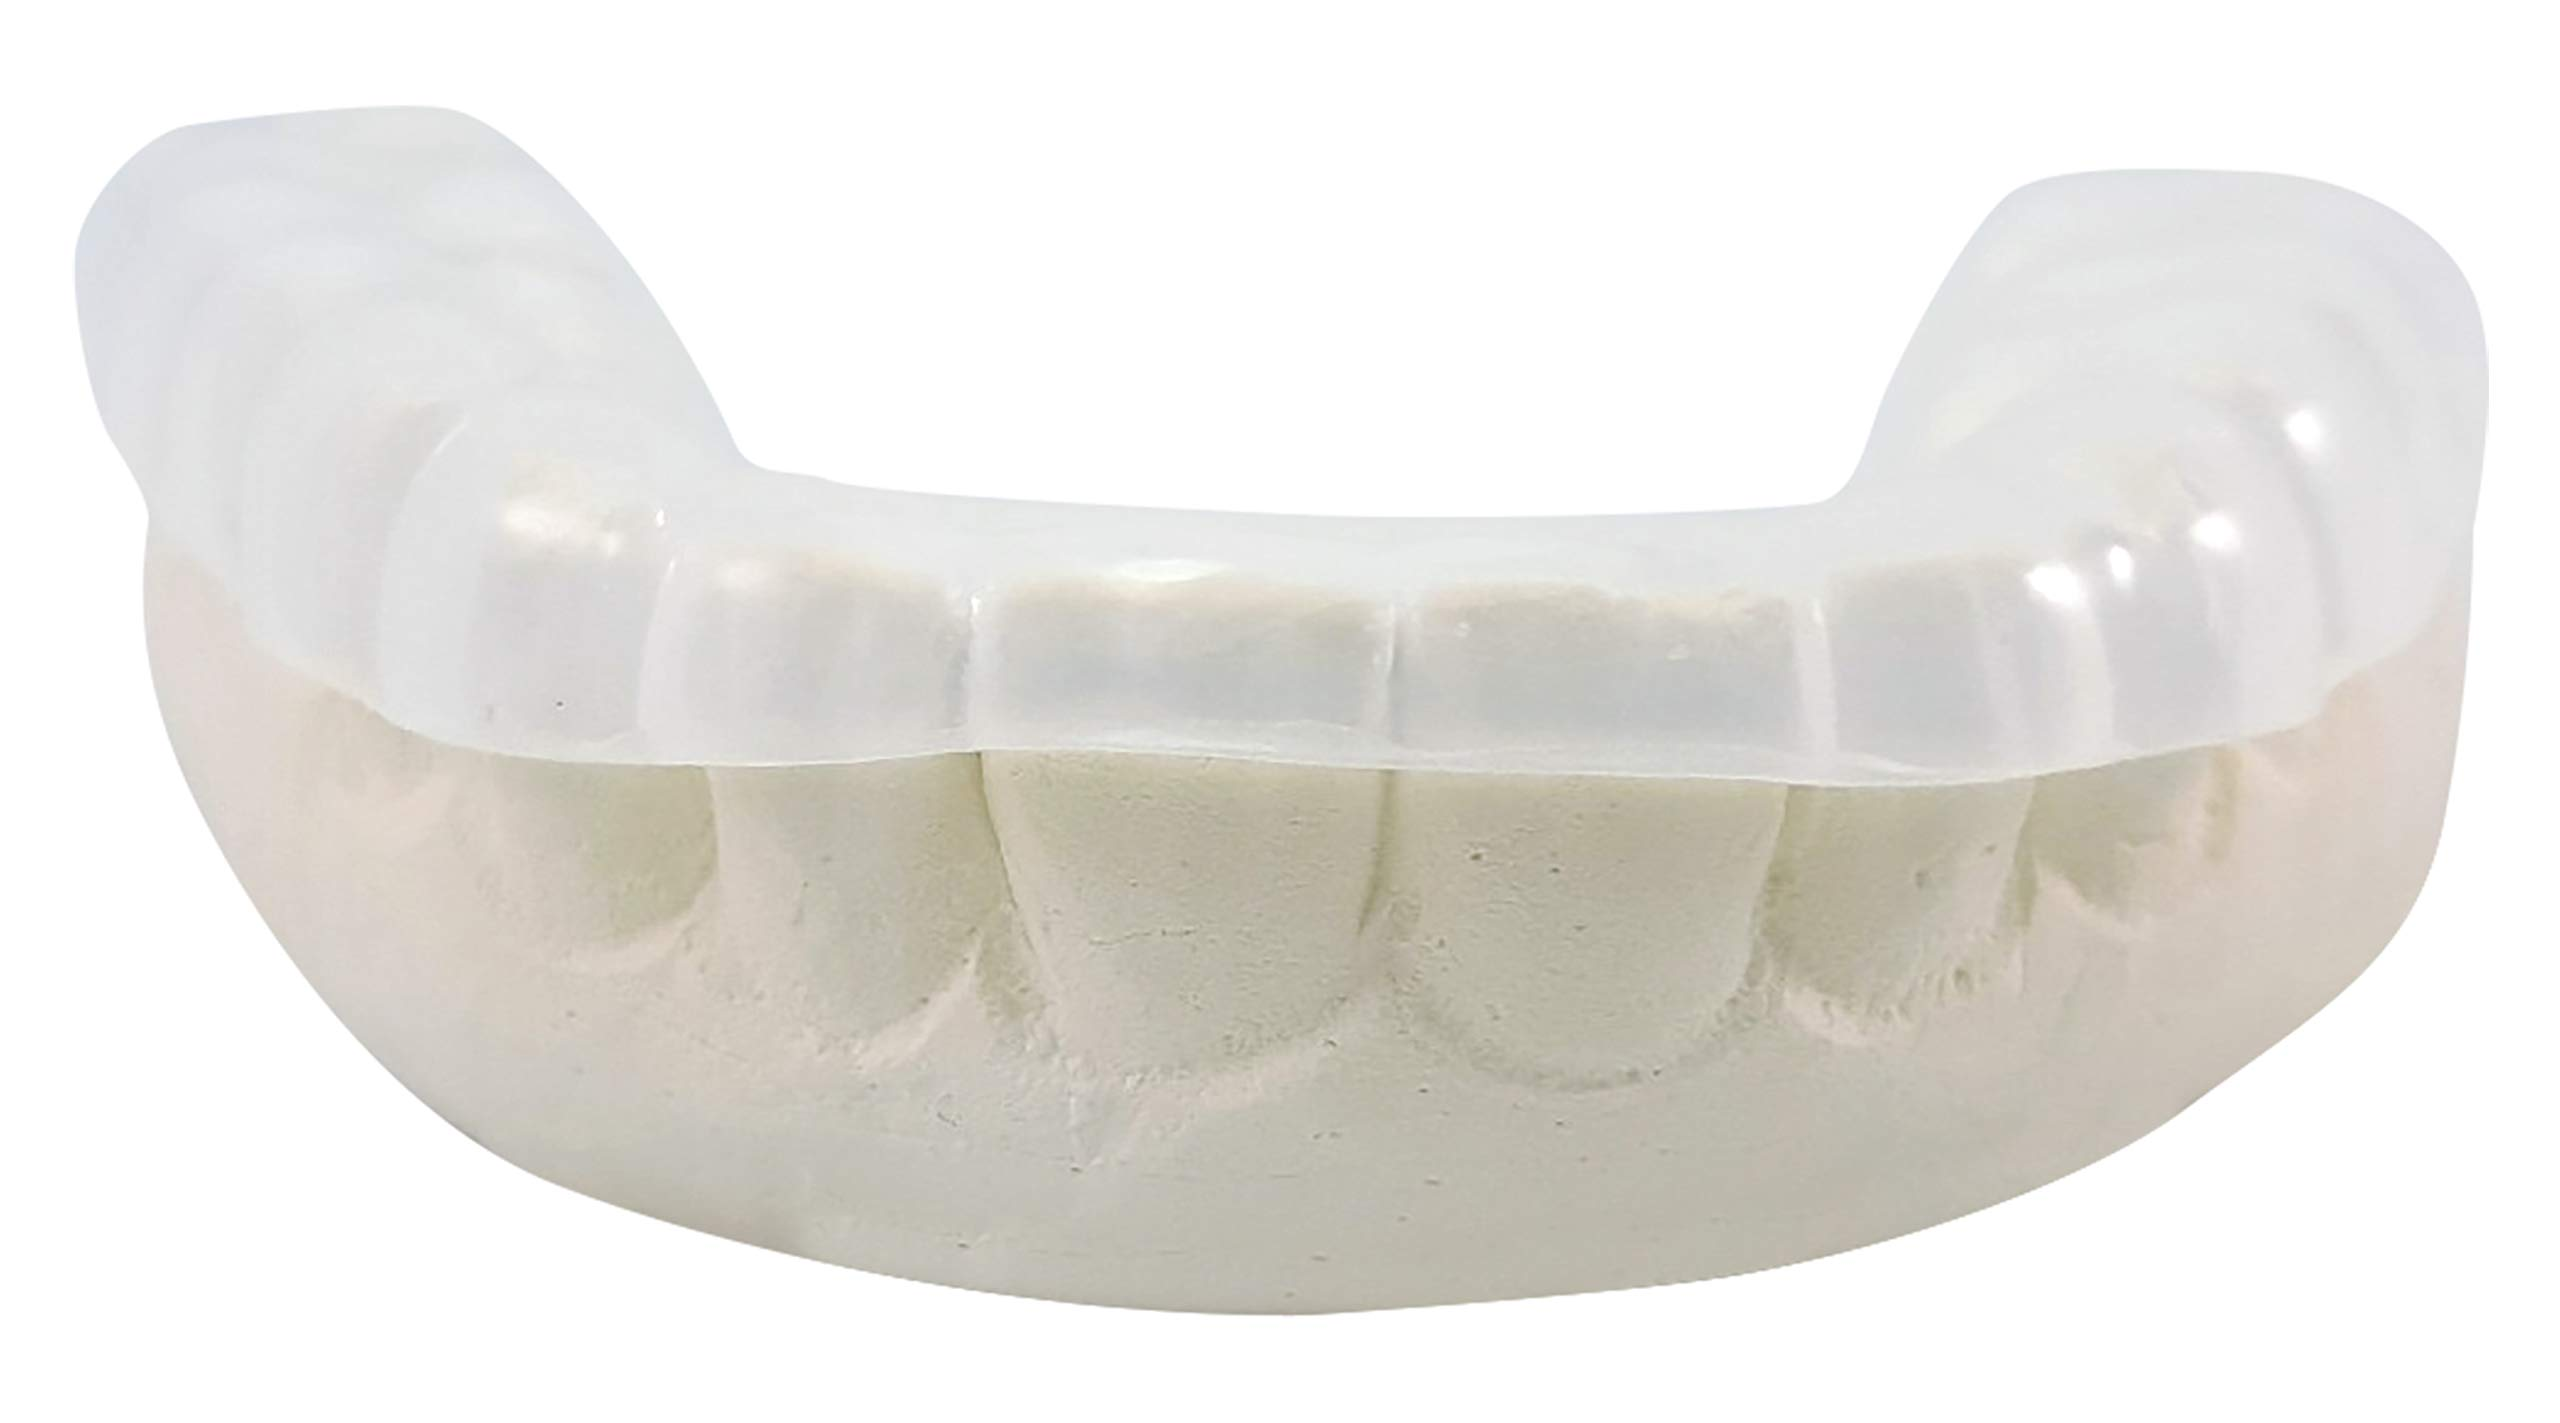 Front Cut Premium Custom Dental Teeth Grinding Guard - For Upper Teeth - Dental Lab Direct - Protect Teeth From Teeth Grinding and Clenching by Sparkling White Smiles